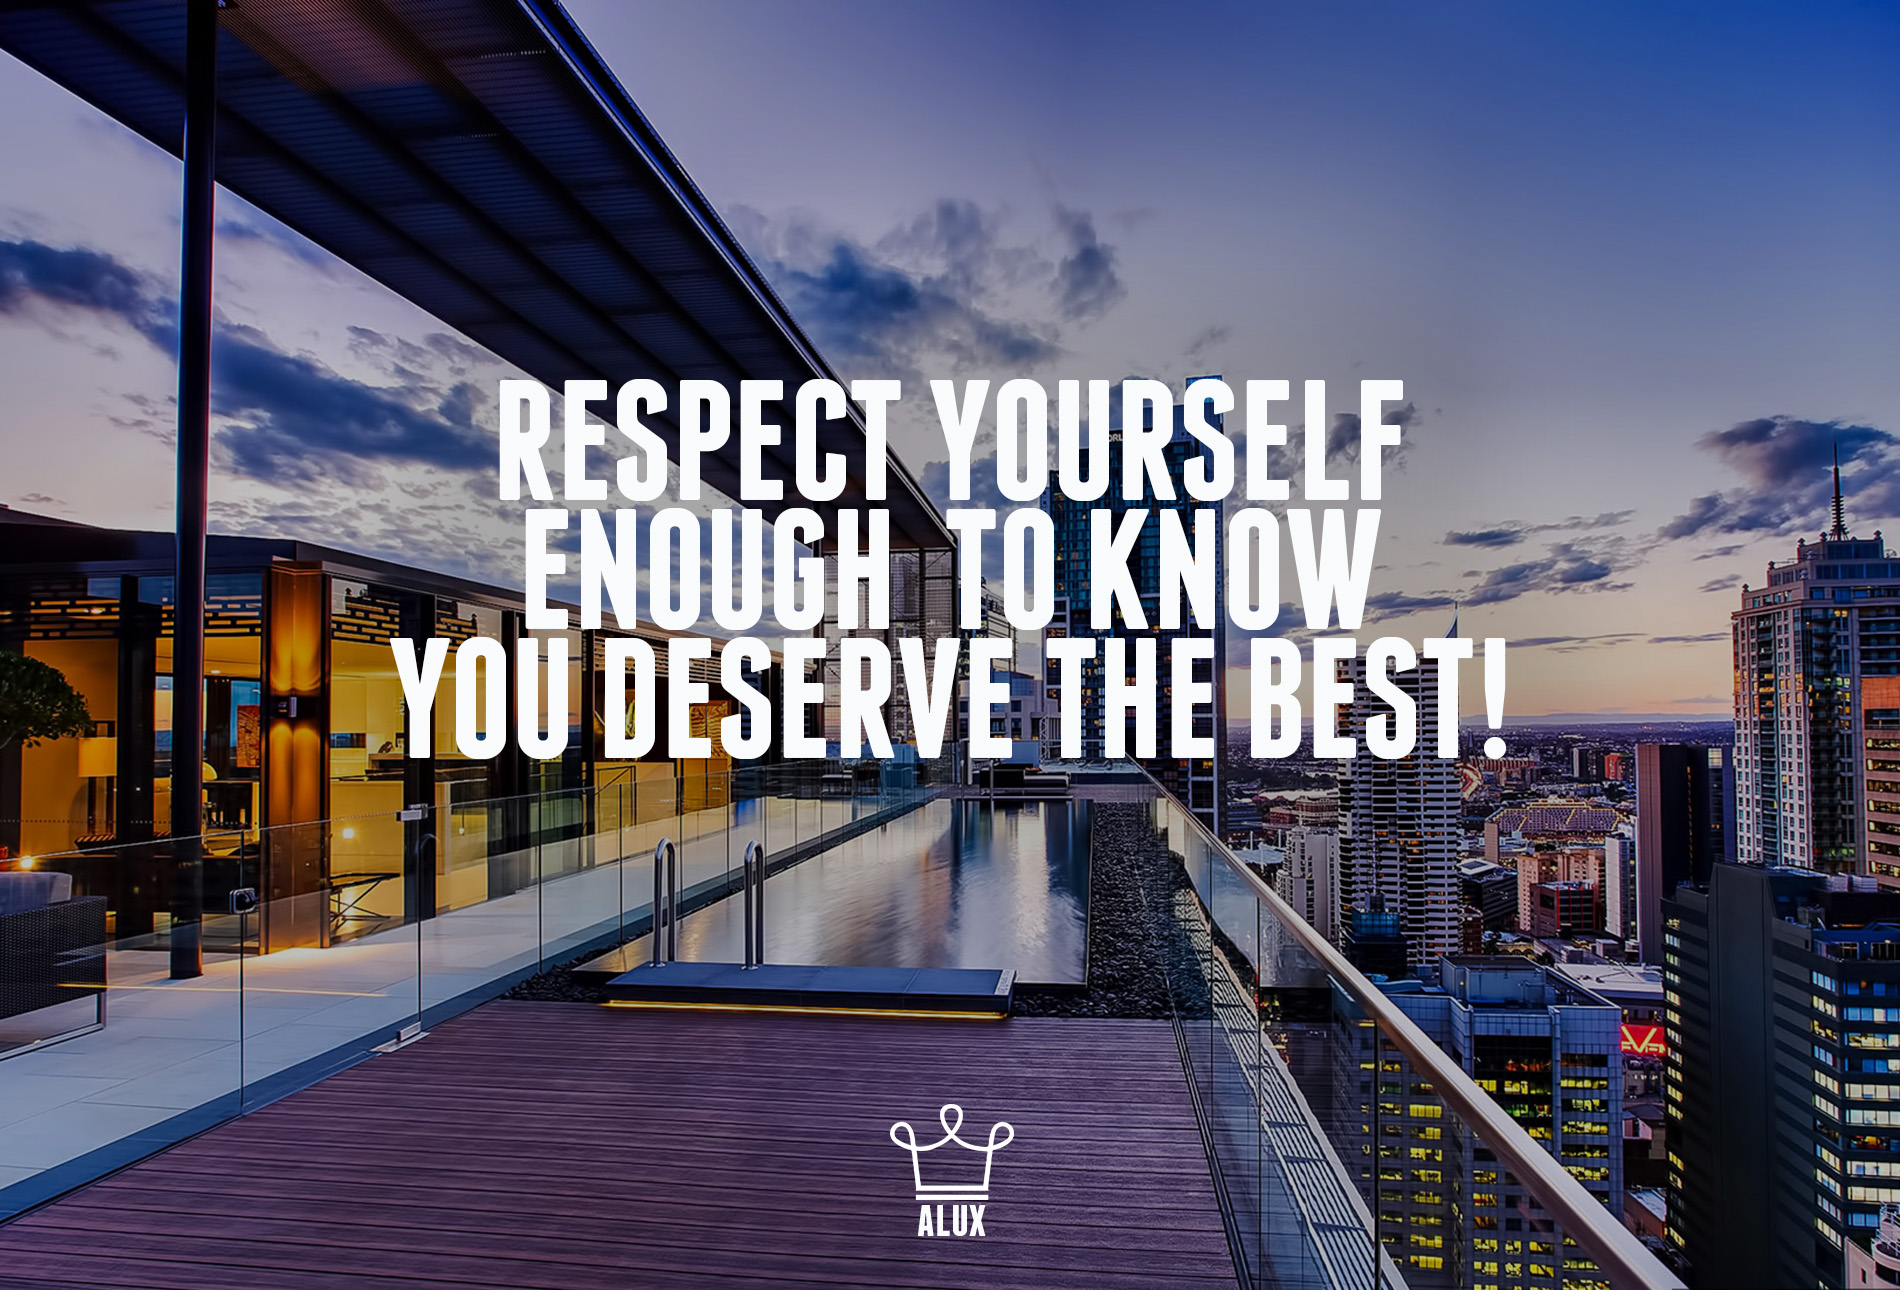 respect yourself enough to know you deserve the best